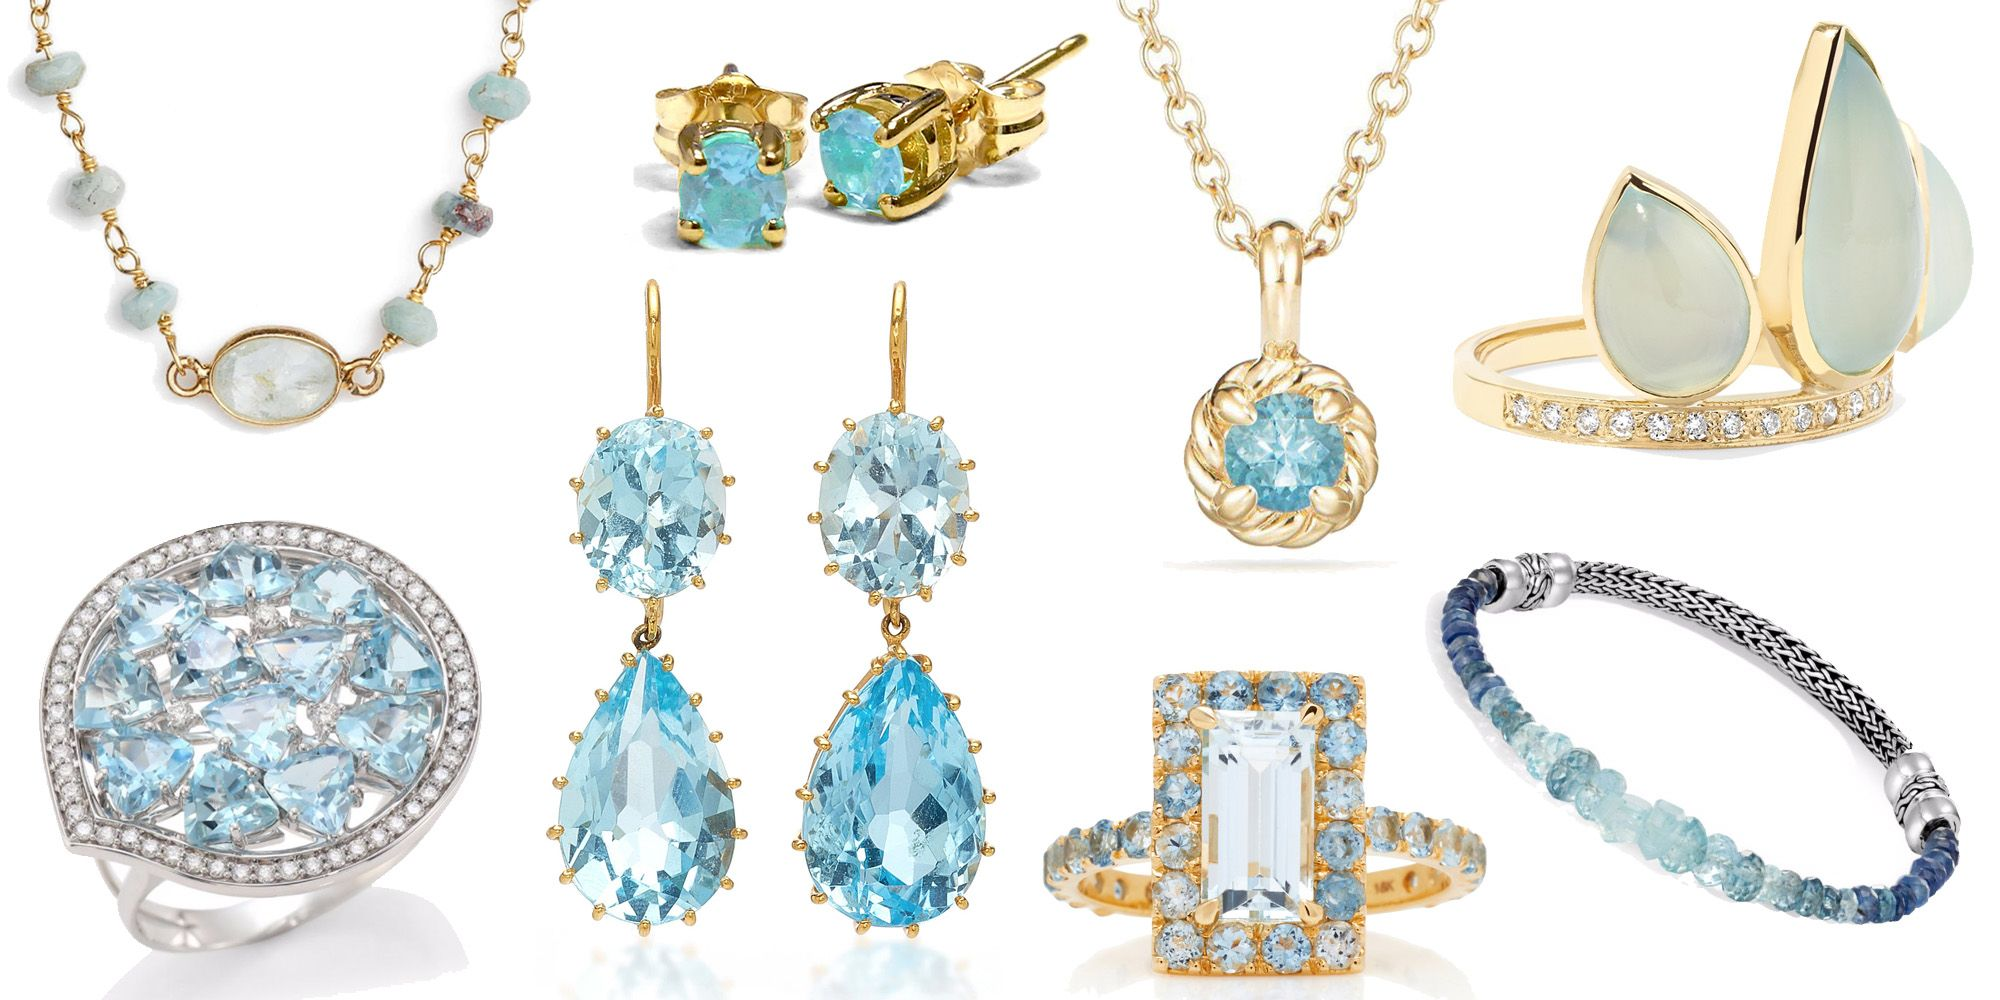 The Best Aquamarine Jewelry for March Birthdays